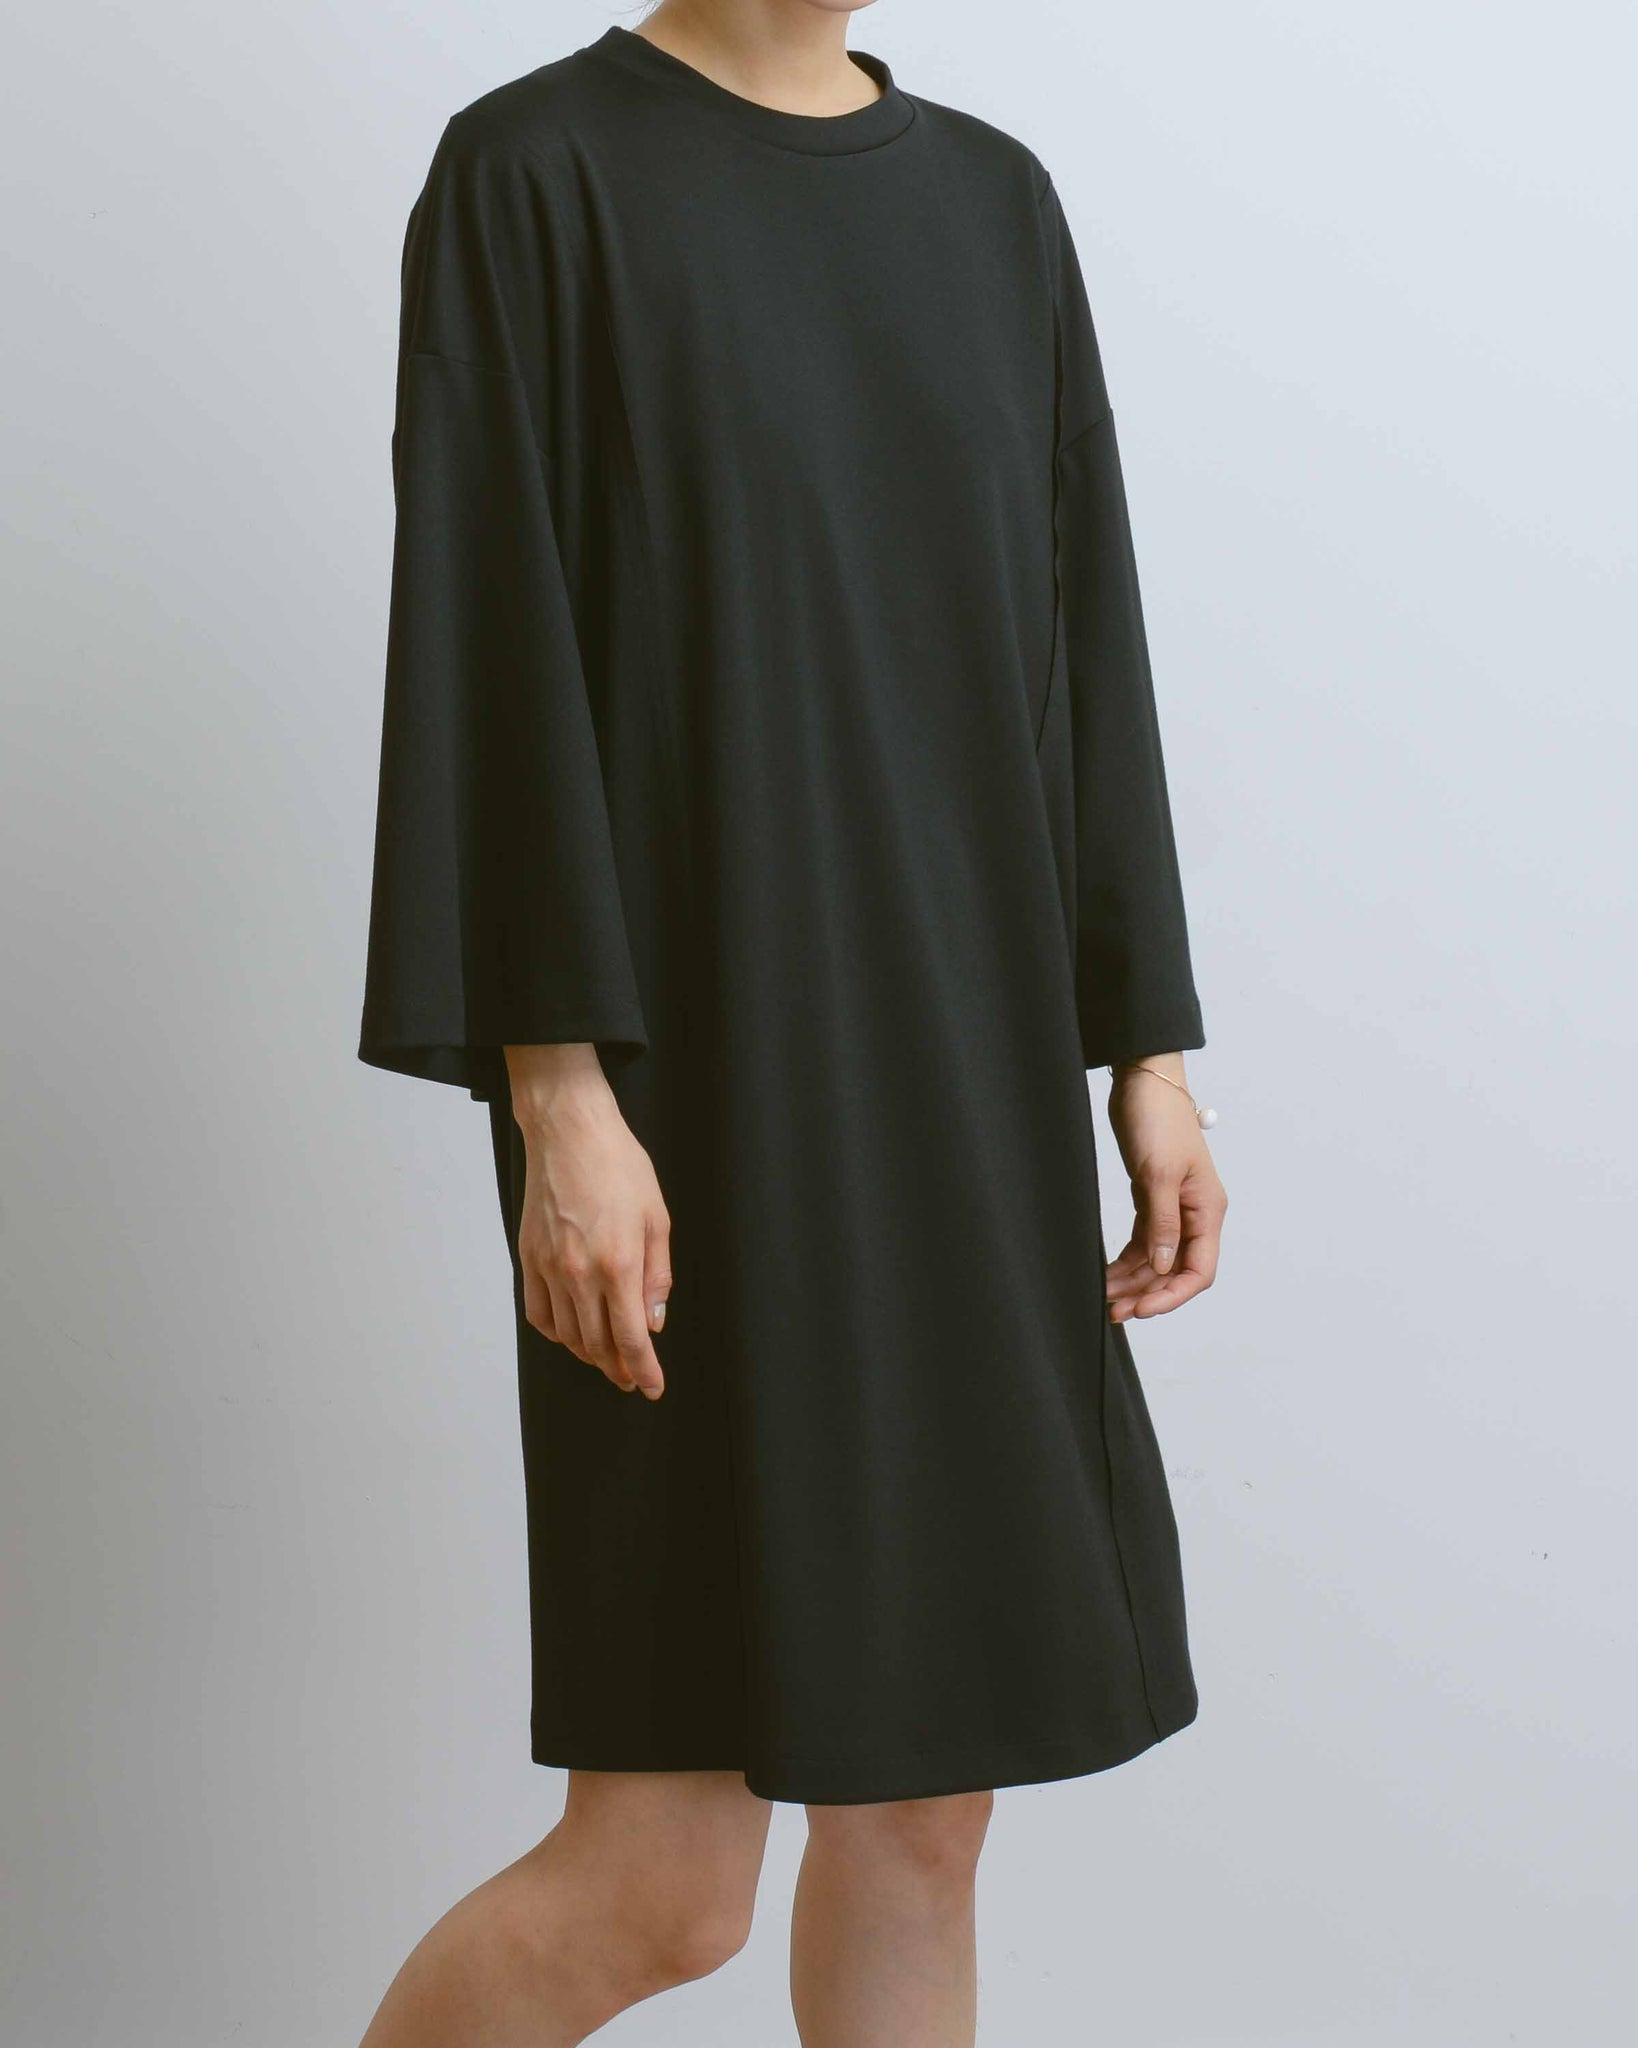 Black Longsleeve T-Shirt Dress with Back Seam